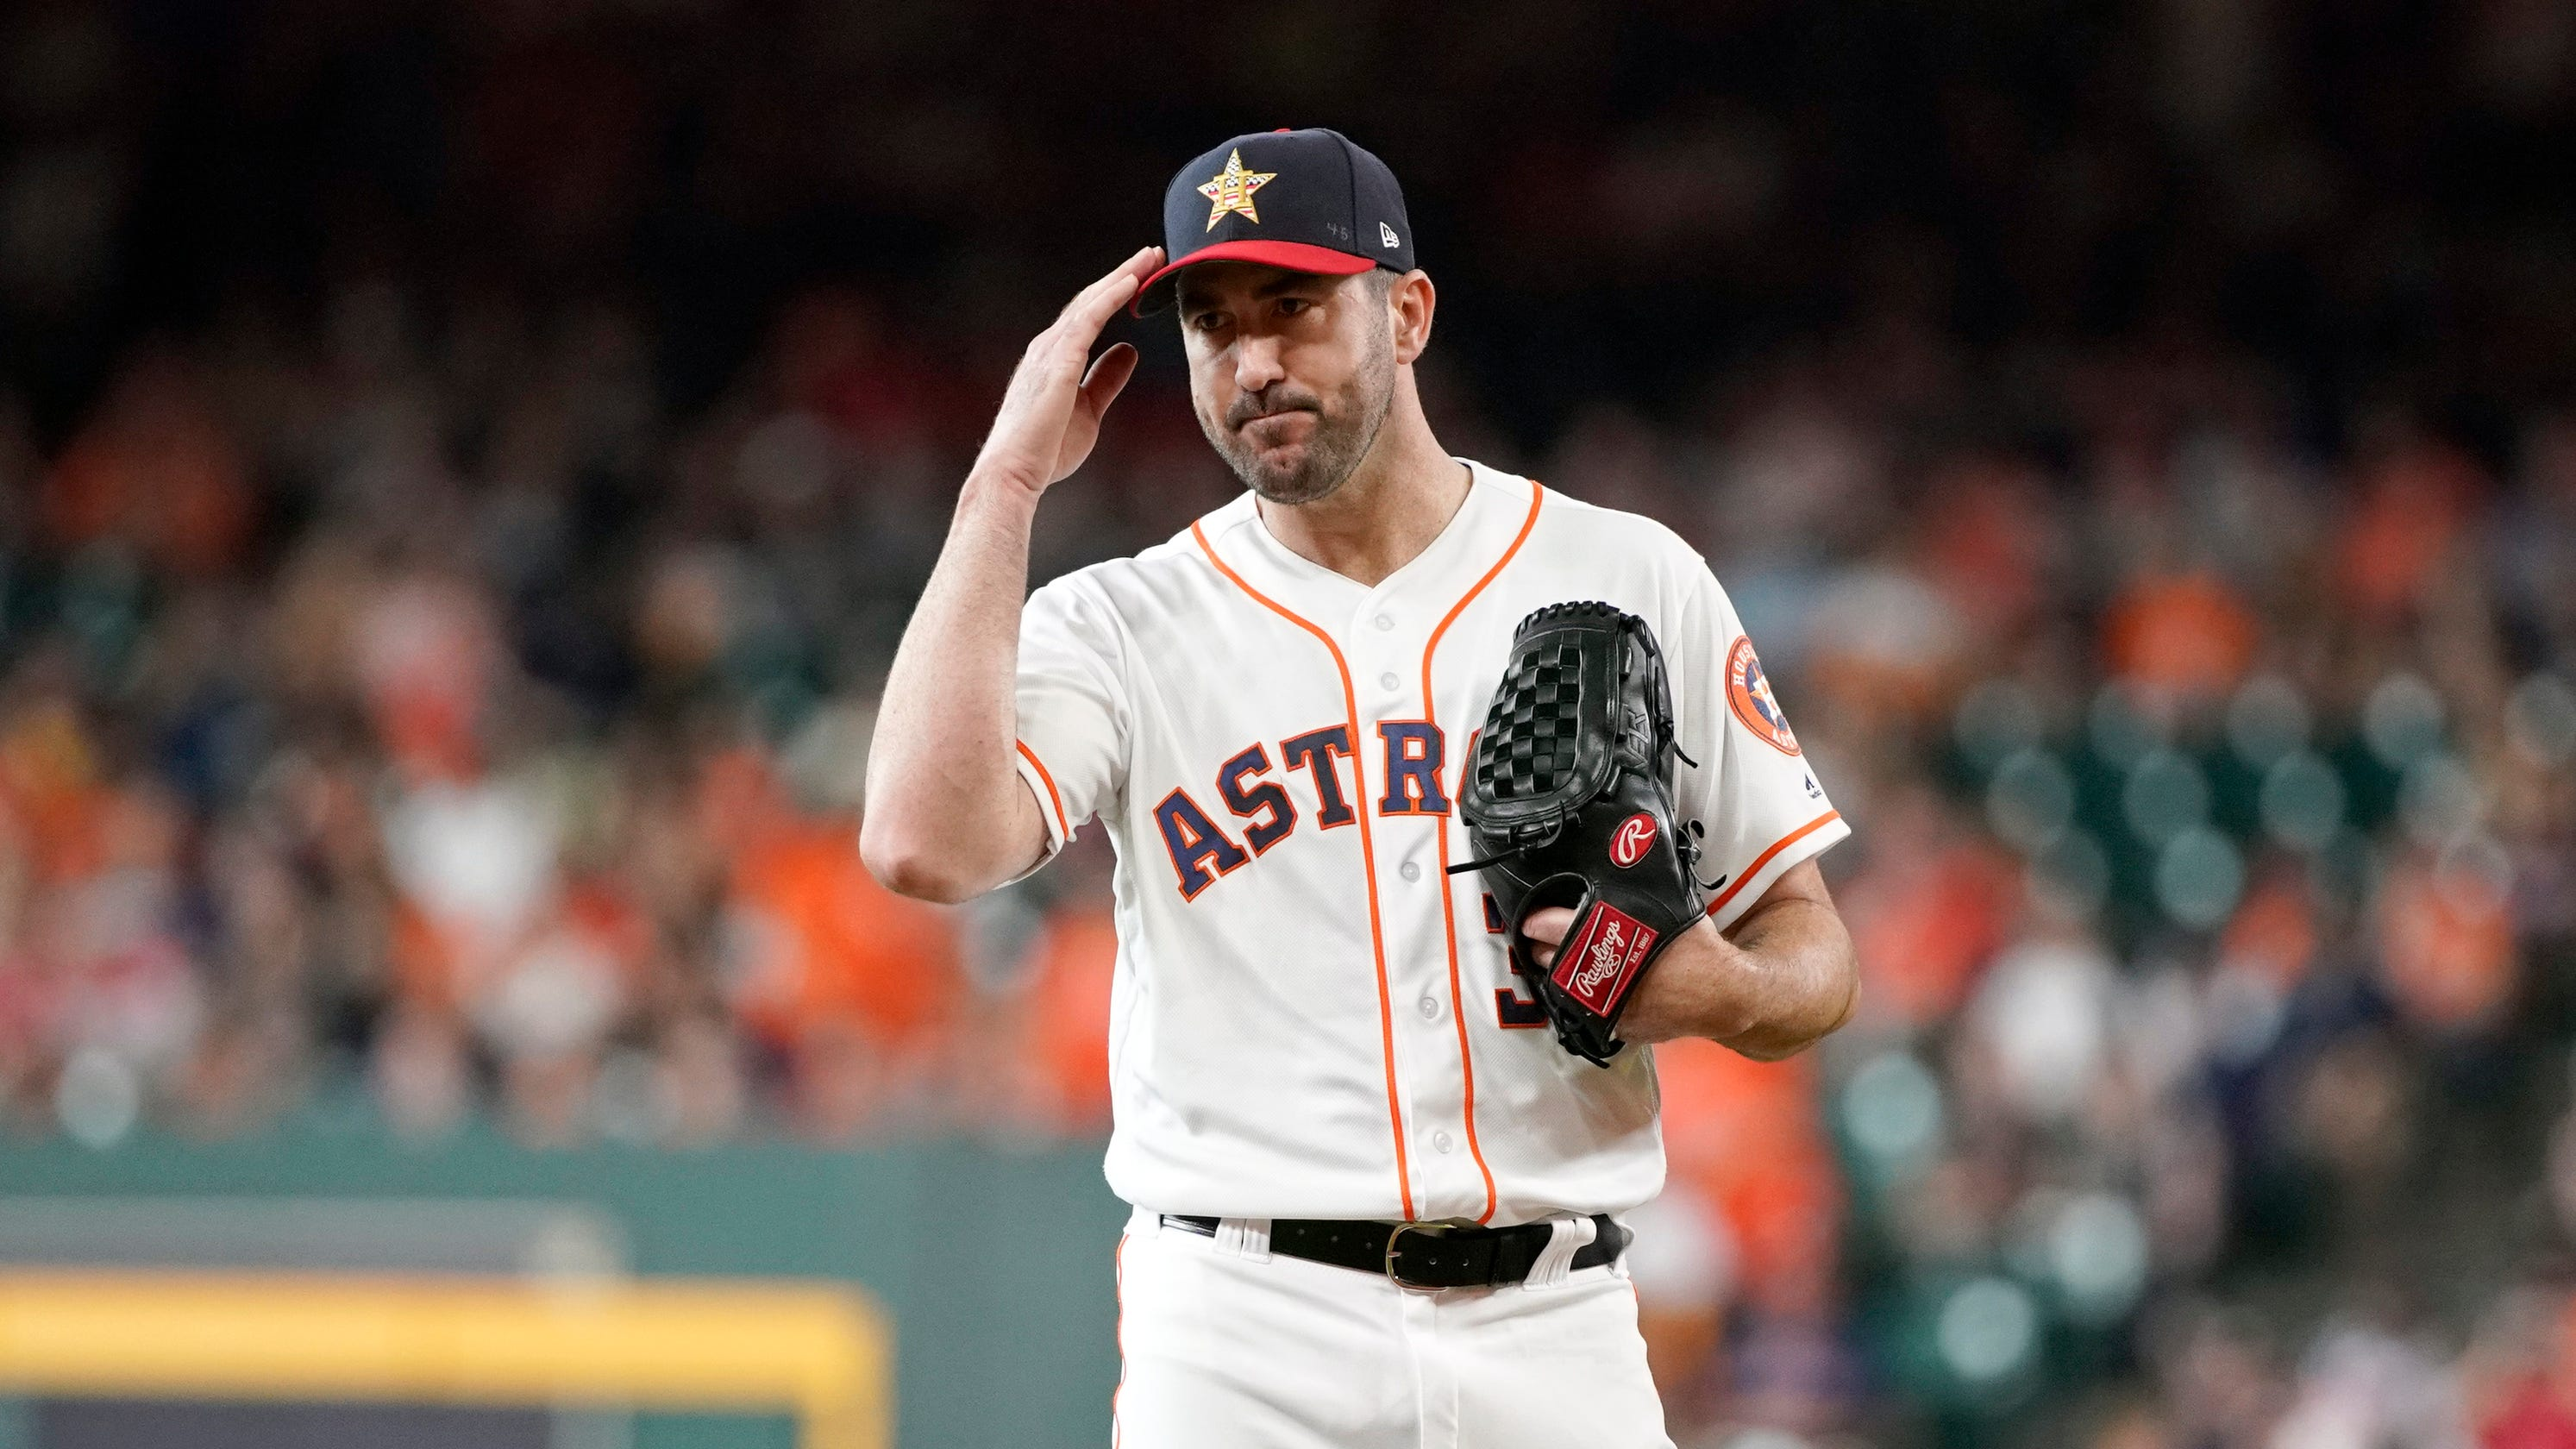 Ex-Tiger Justin Verlander donating next two months' pay to those in need